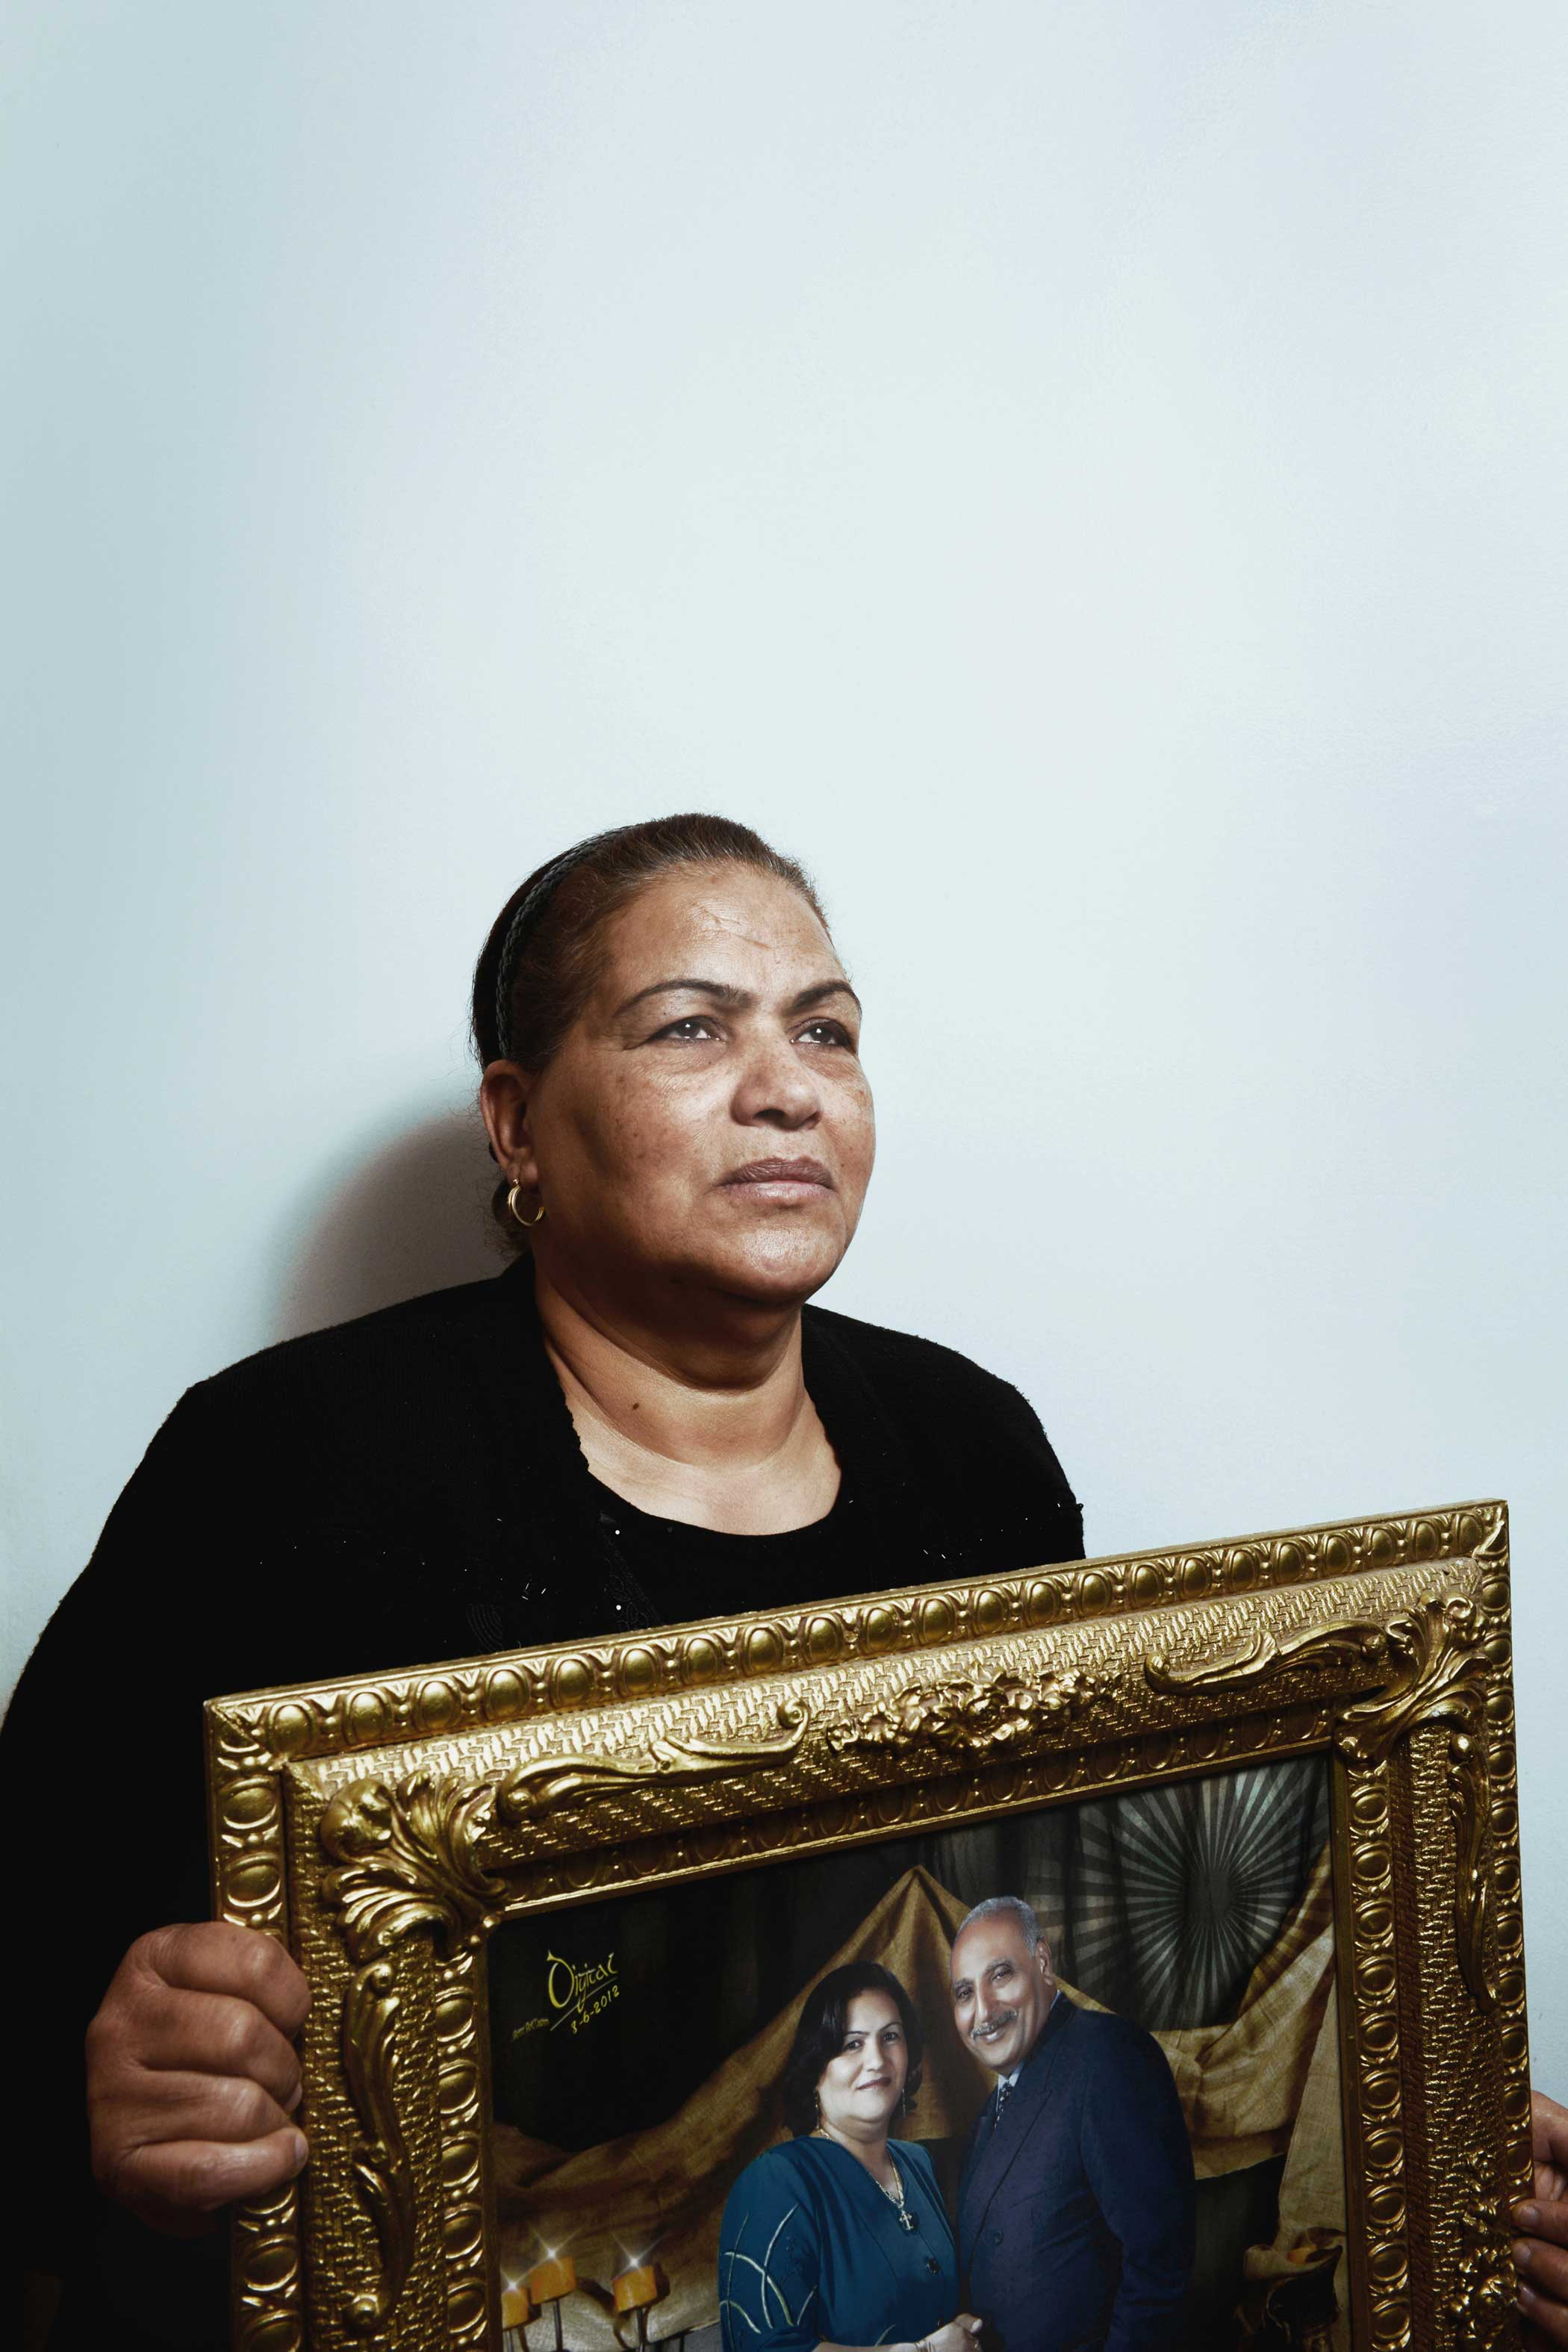 Enayat Shenouda, 62, holds a photo of her slain husband, Saad Zaki Badawi, 73.  Four months ago, after the recent Cairo Cathedral bombing, Saad told me he has wished he was one of the martyrs,  Enayat said.  His wish came true yesterday. Now he is a martyr.  From  'He Was My Everything': Portraits of Grief After Egypt Church Blasts .